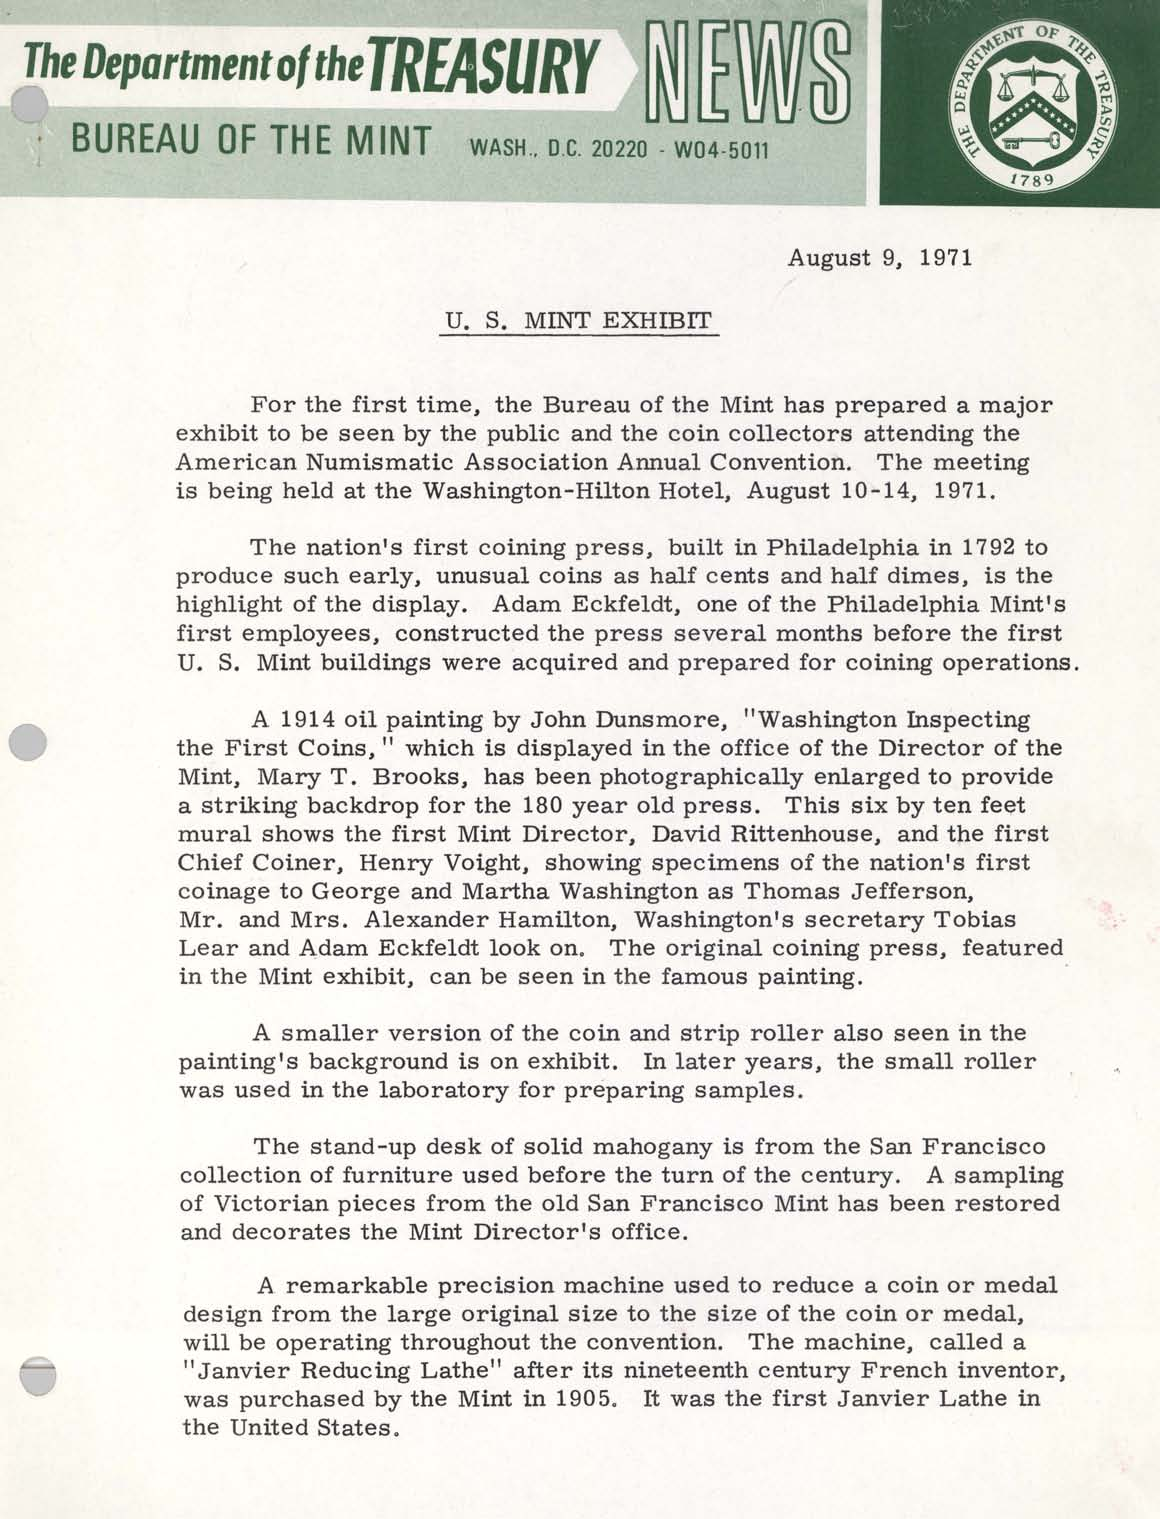 Historic Press Release: Mint Exhibit at ANA 1971, Page 1